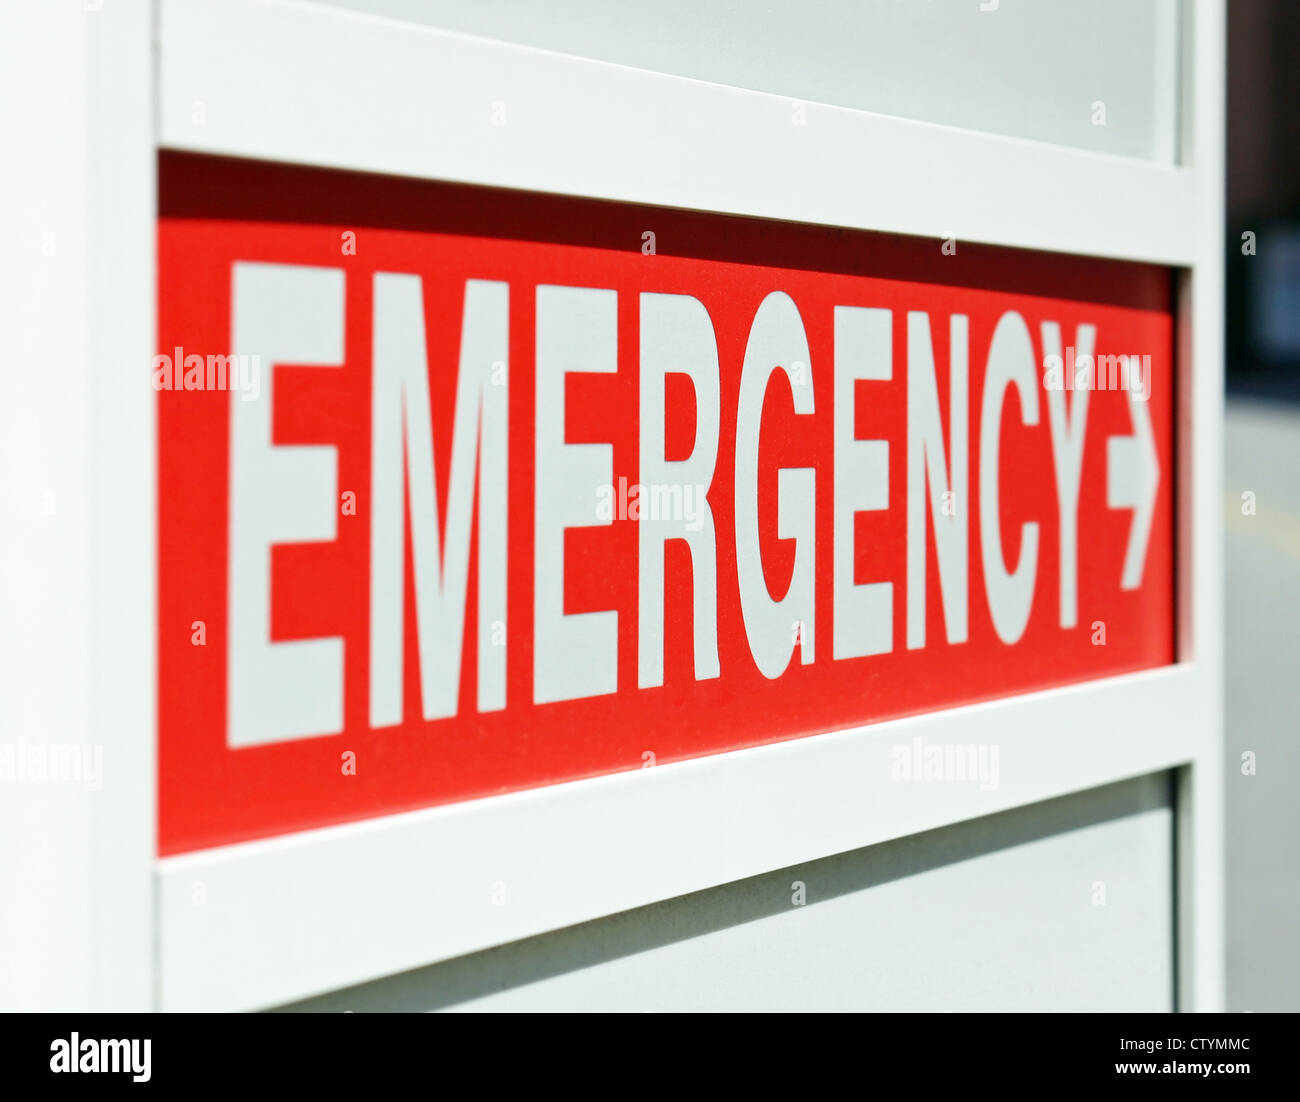 A red Emergency sign at the entrance to a hospital - Stock Image